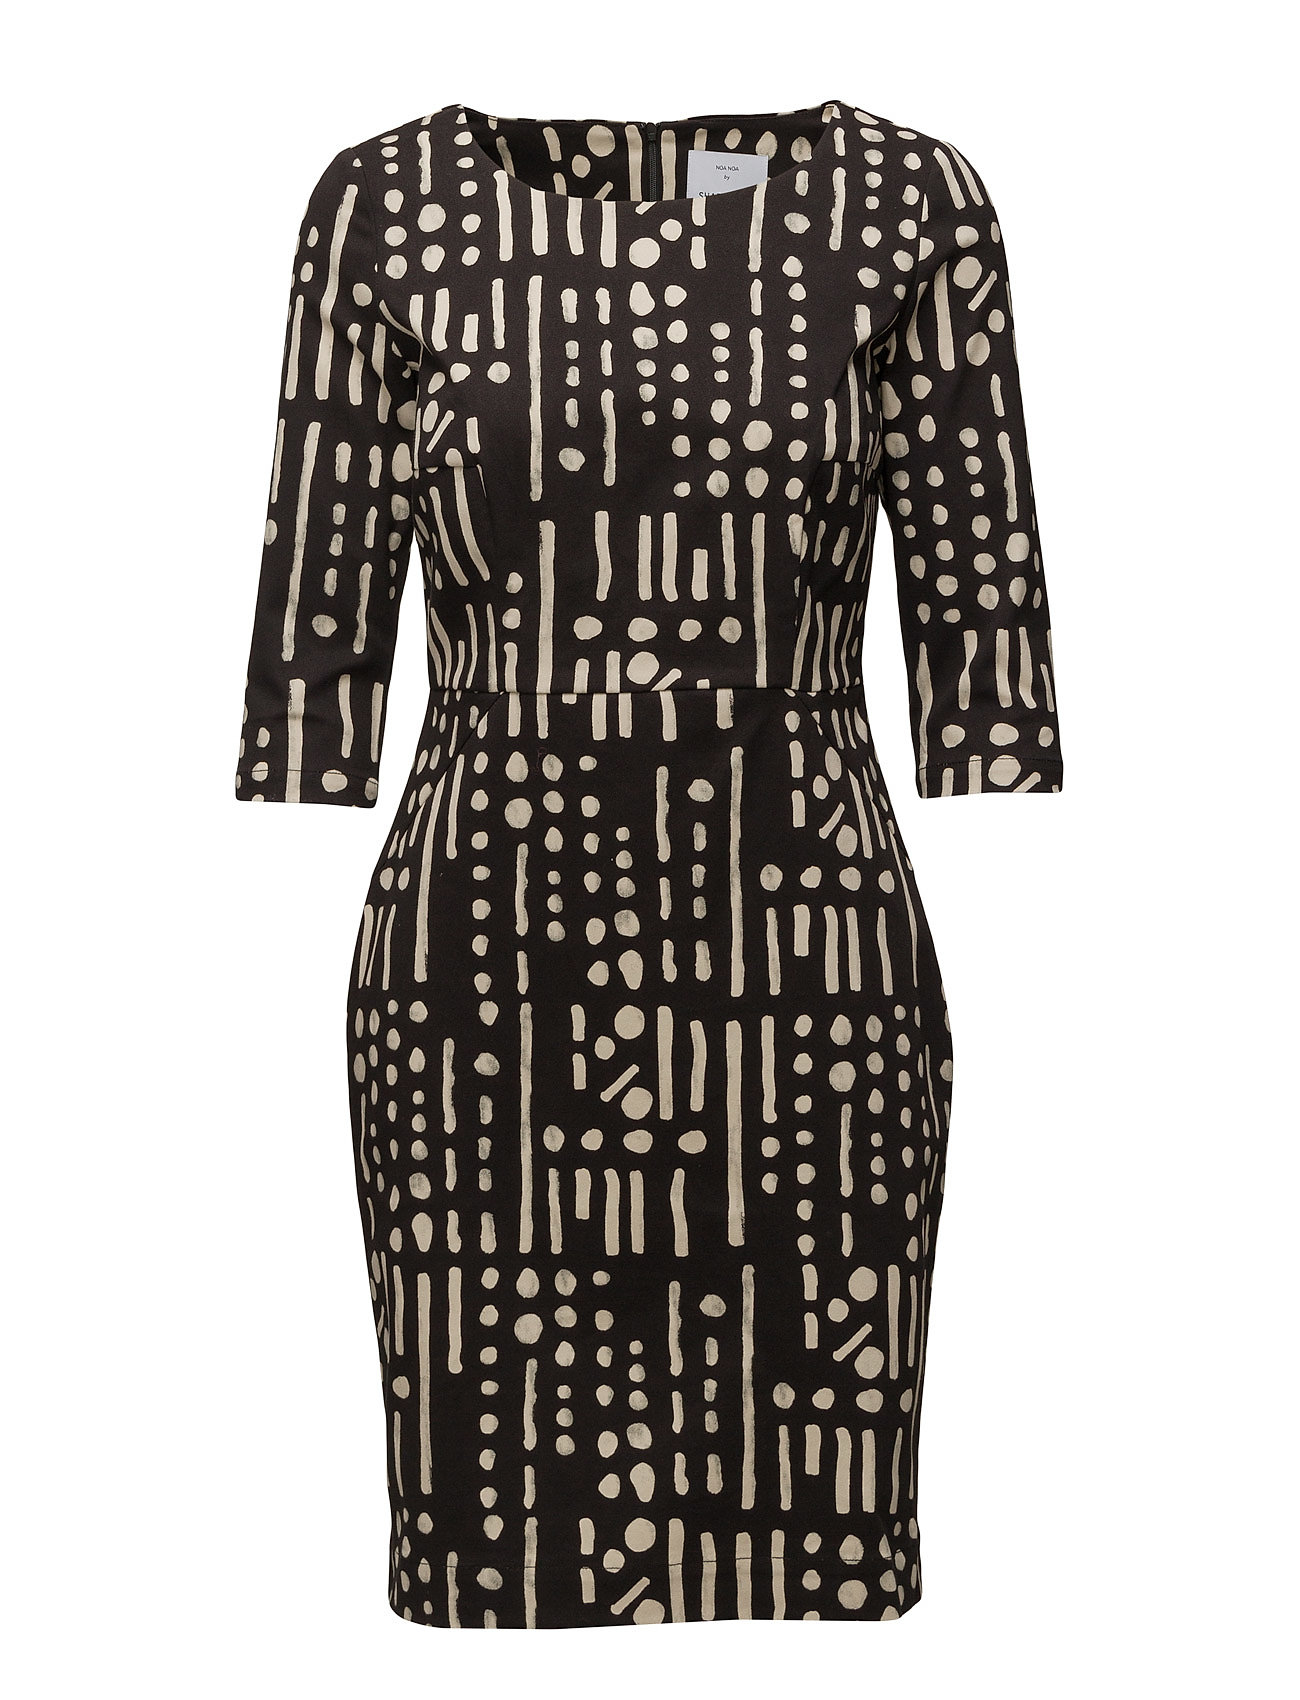 Dress Long Sleeve Noa Noa Knælange & mellemlange til Damer i Print Black